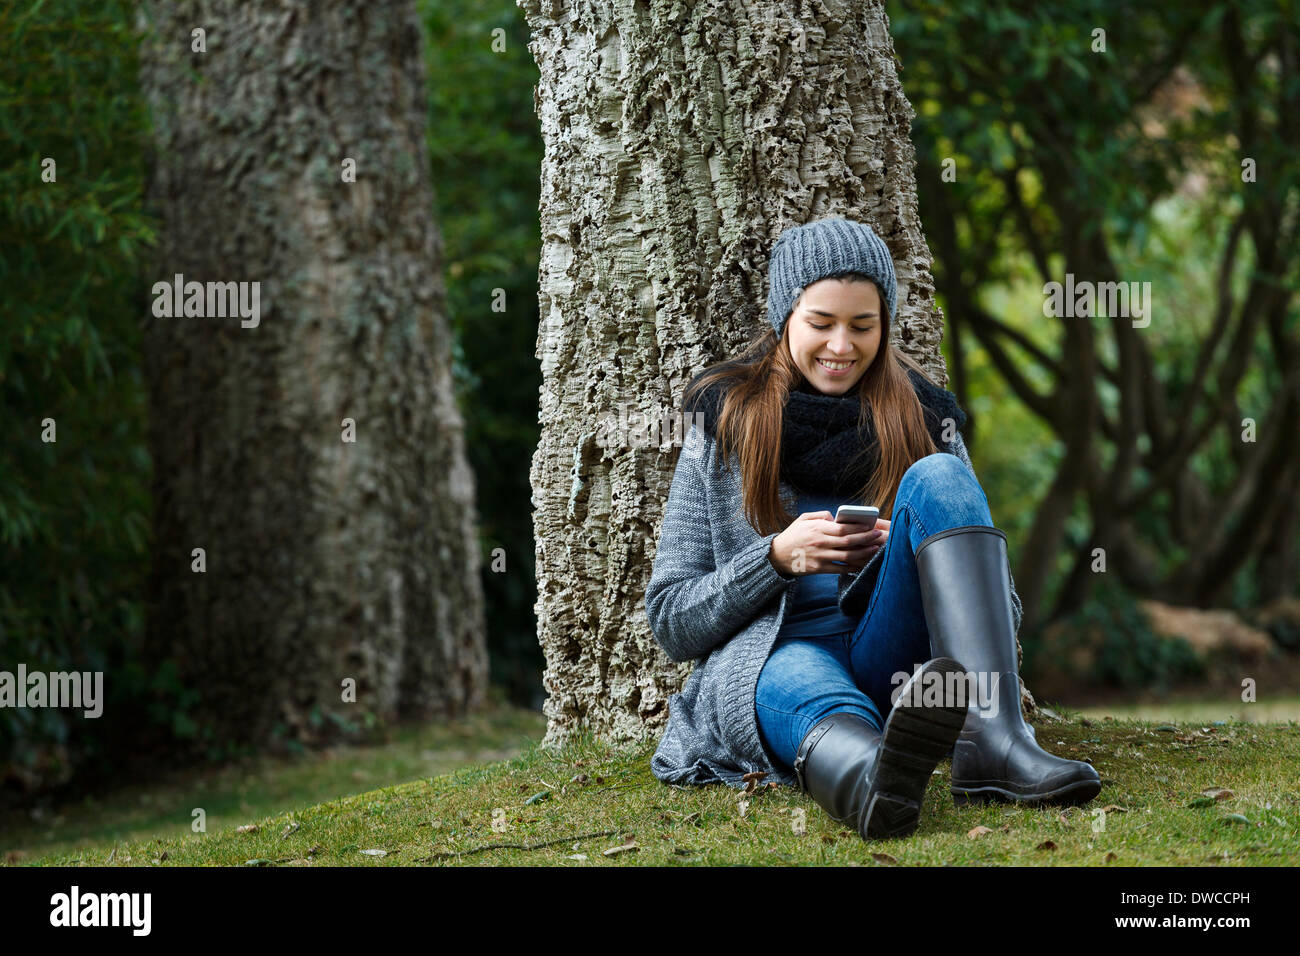 Young woman using cellular phone in forest - Stock Image